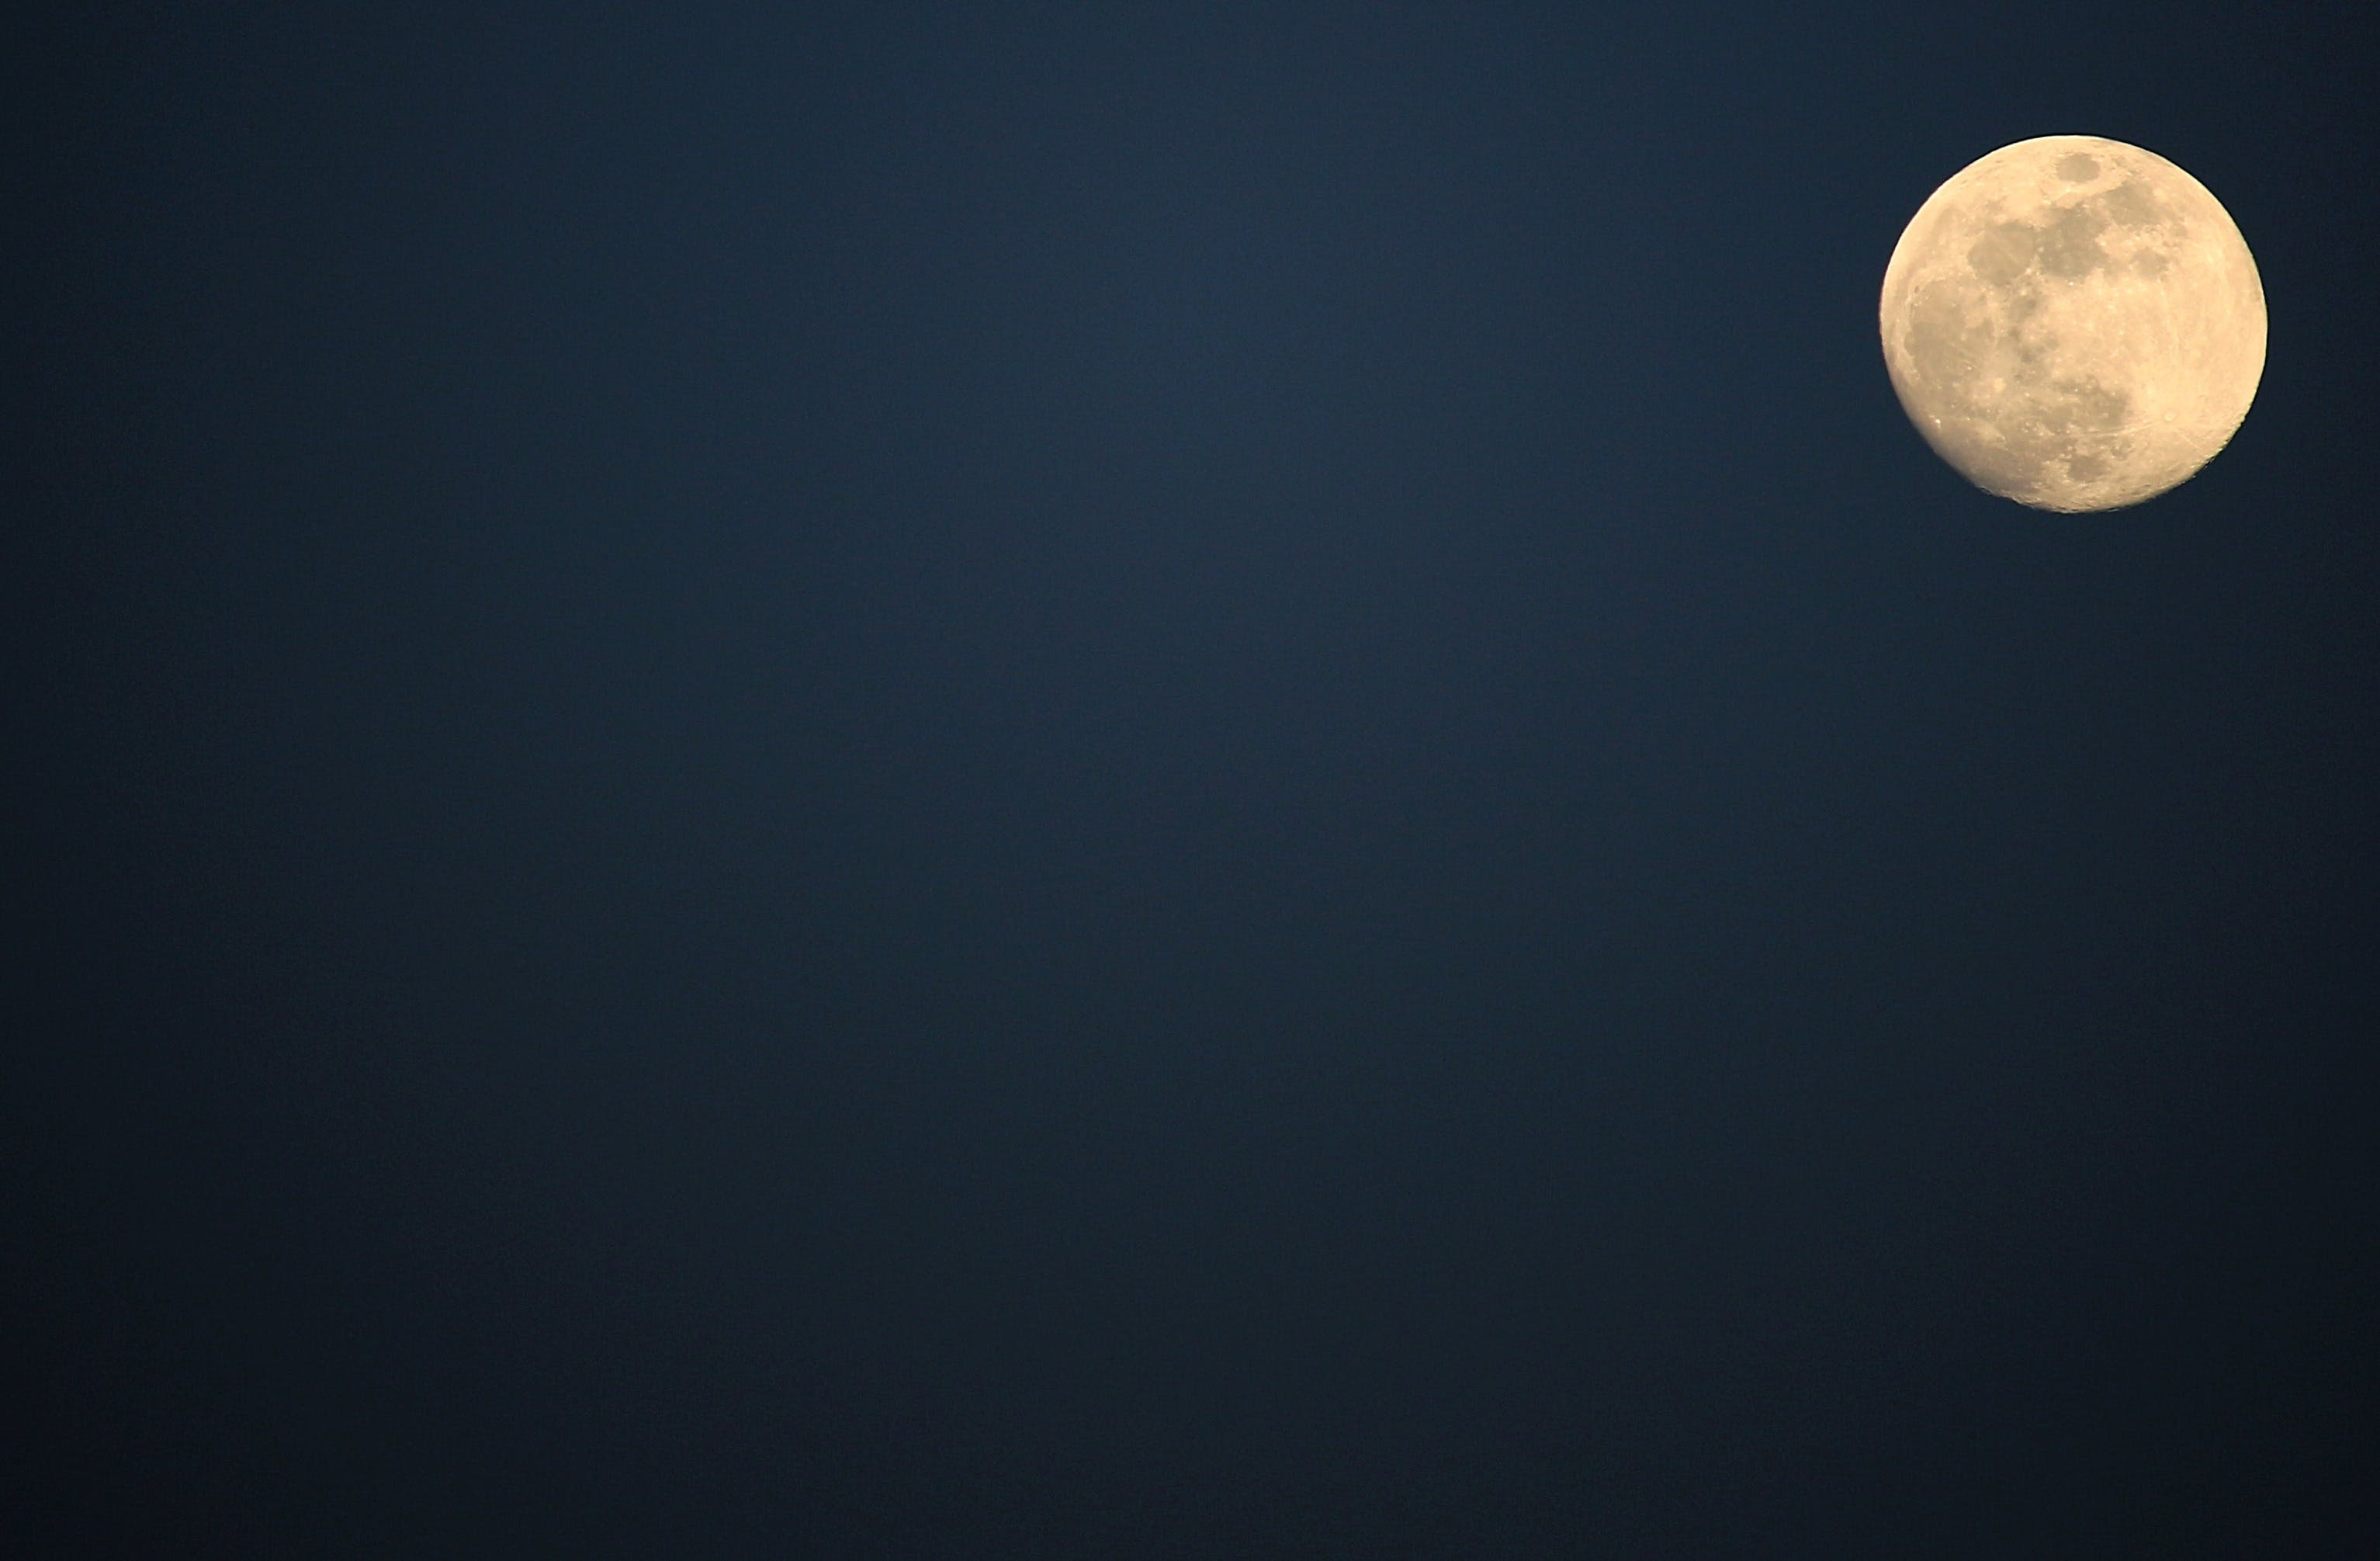 Free stock photo of nature, night, space, moon